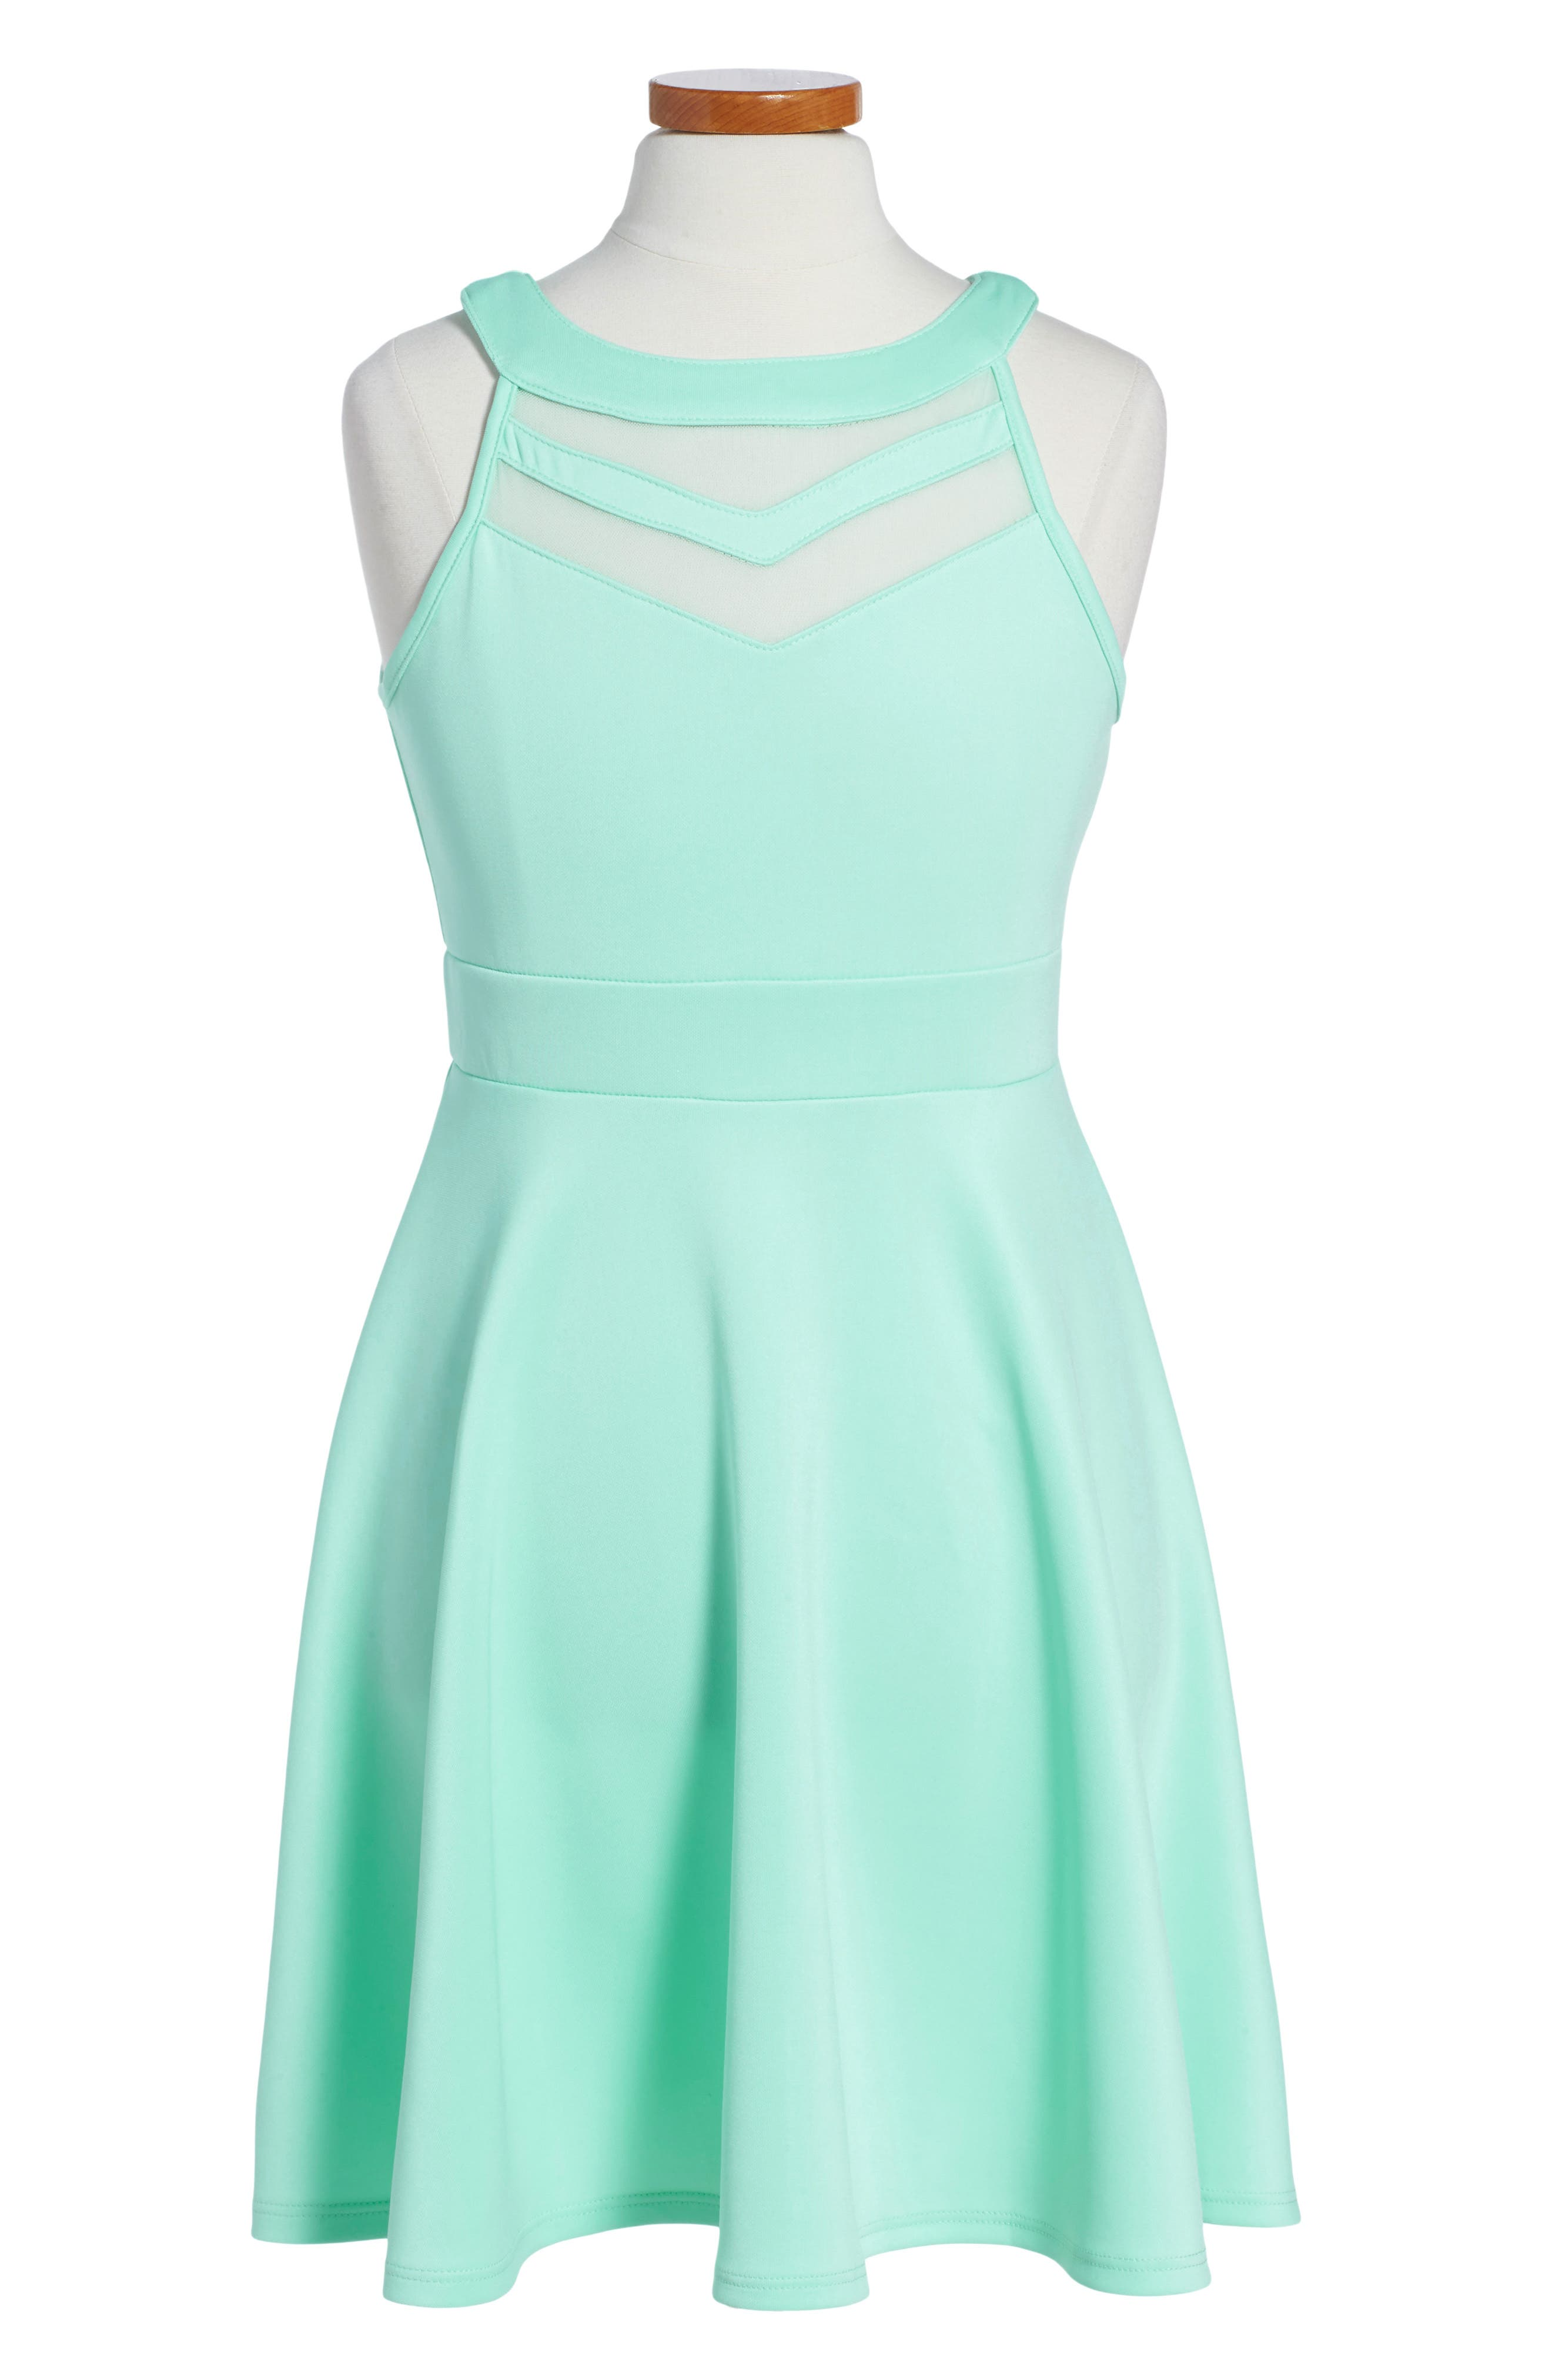 LOVE, NICKIE LEW, Mesh Inset Party Dress, Main thumbnail 1, color, MINT